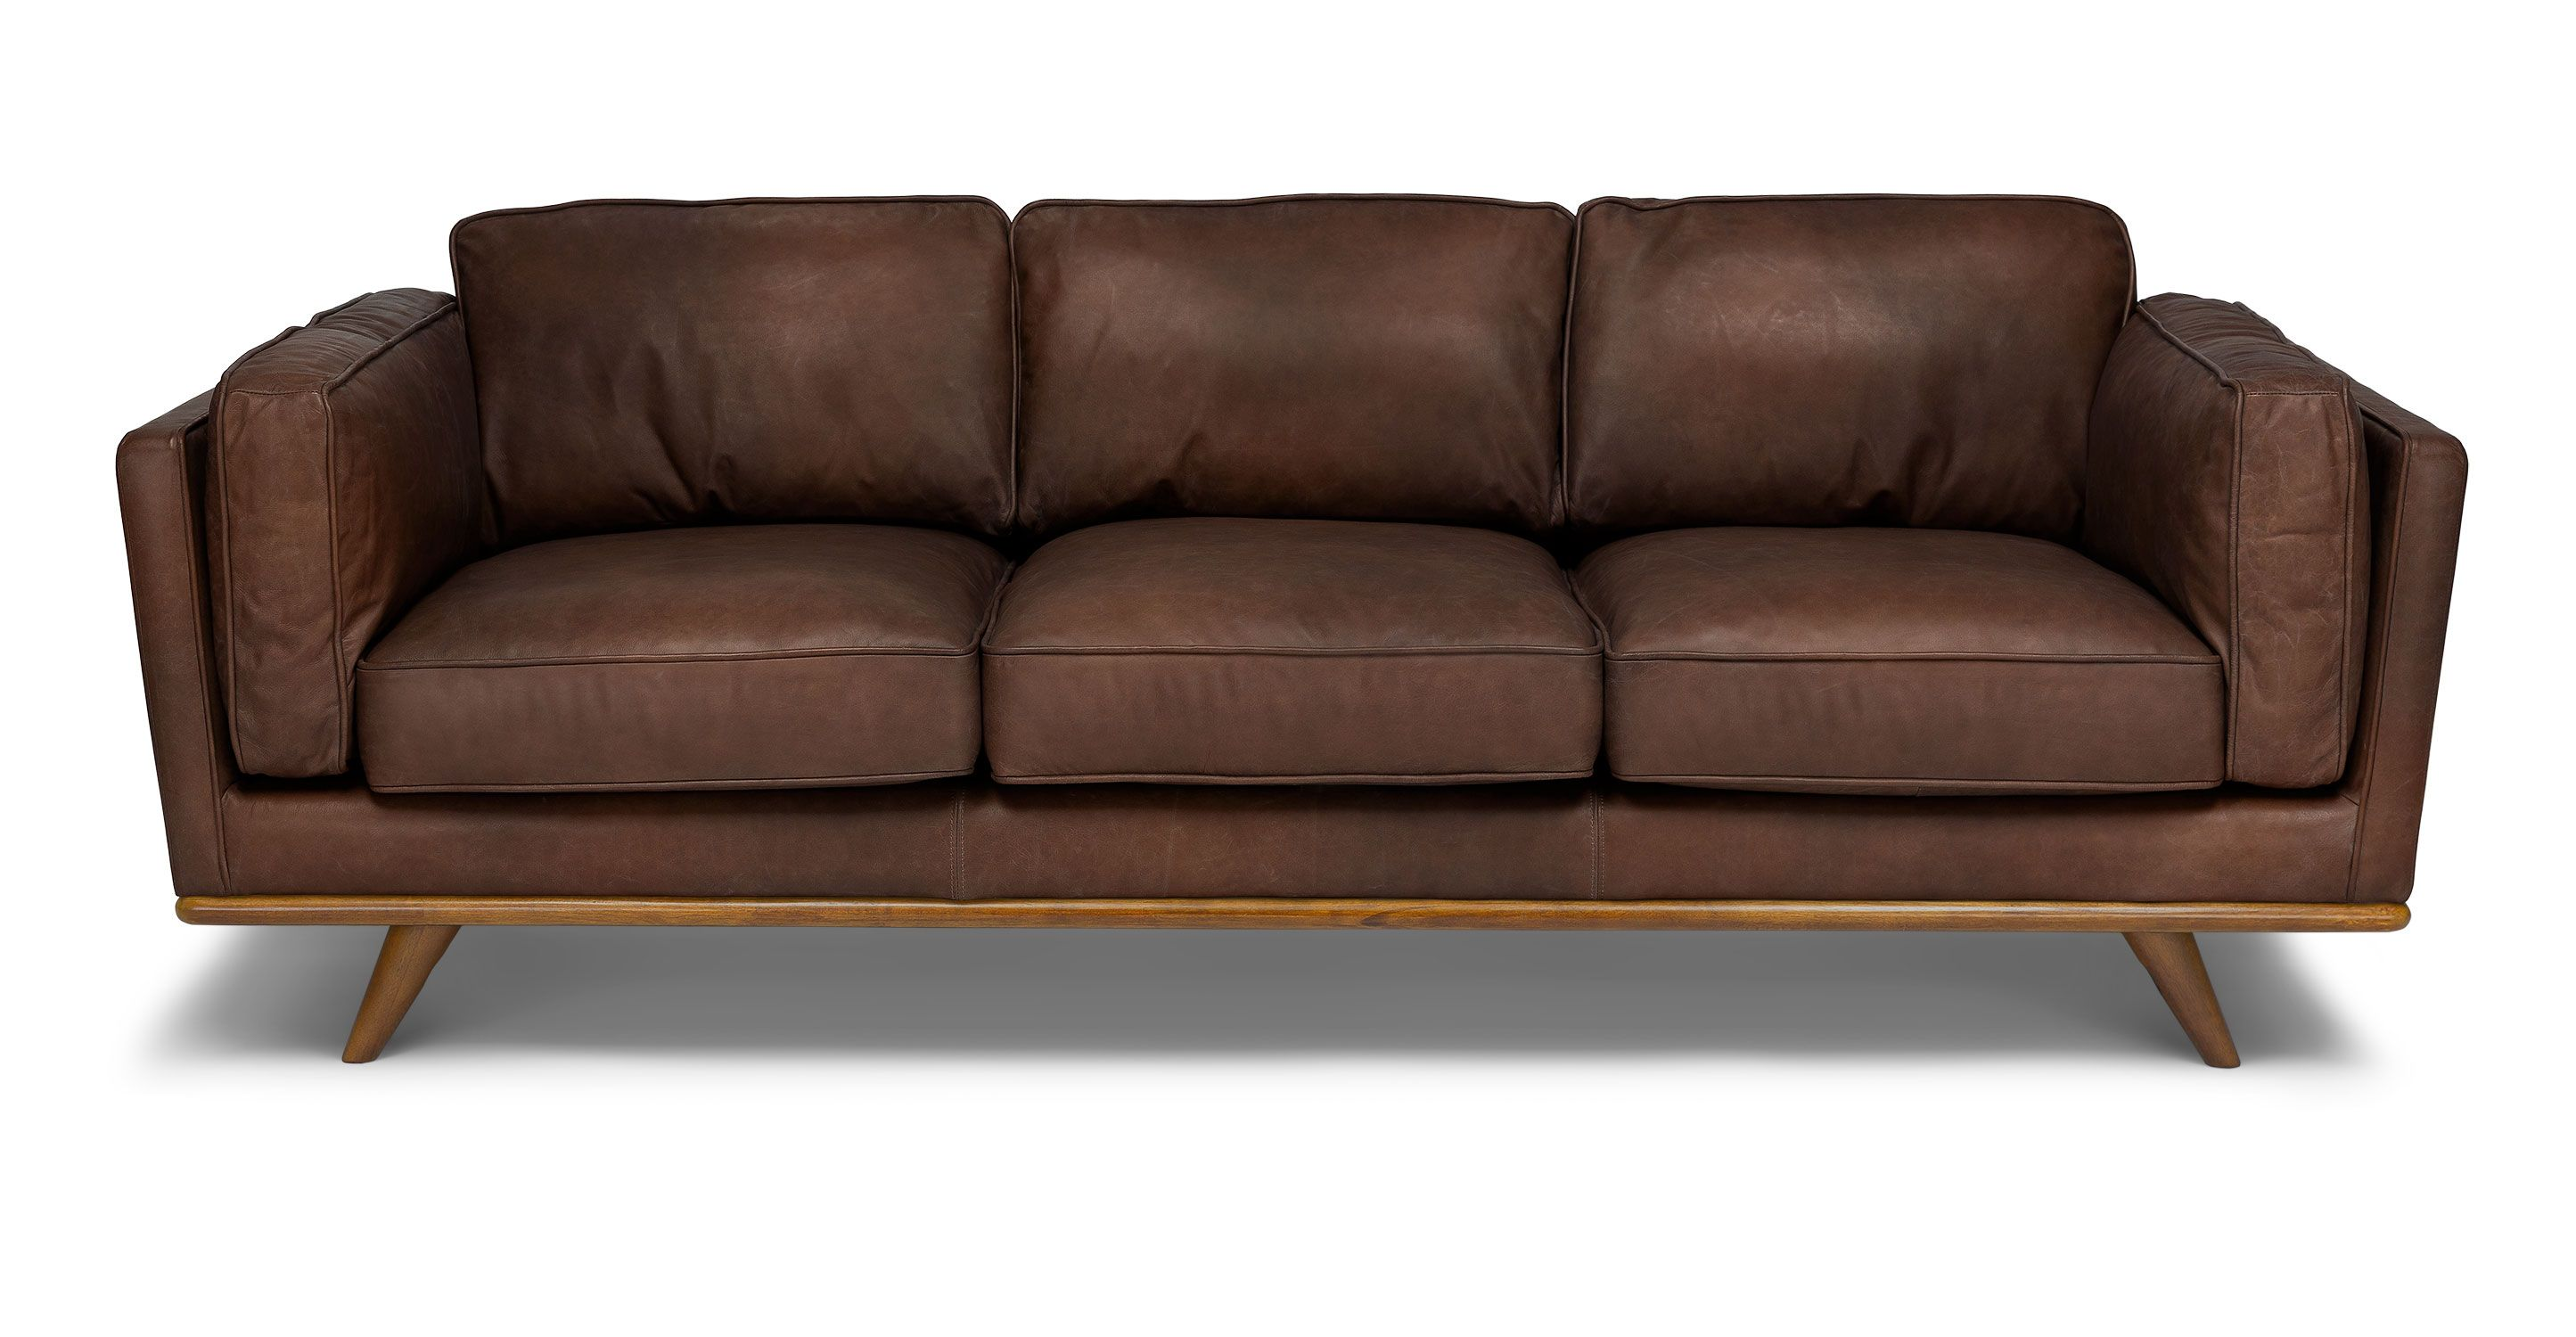 chelsea loveseats sofas home couches shop couch sofa stores browse pin our geneva atg at tan